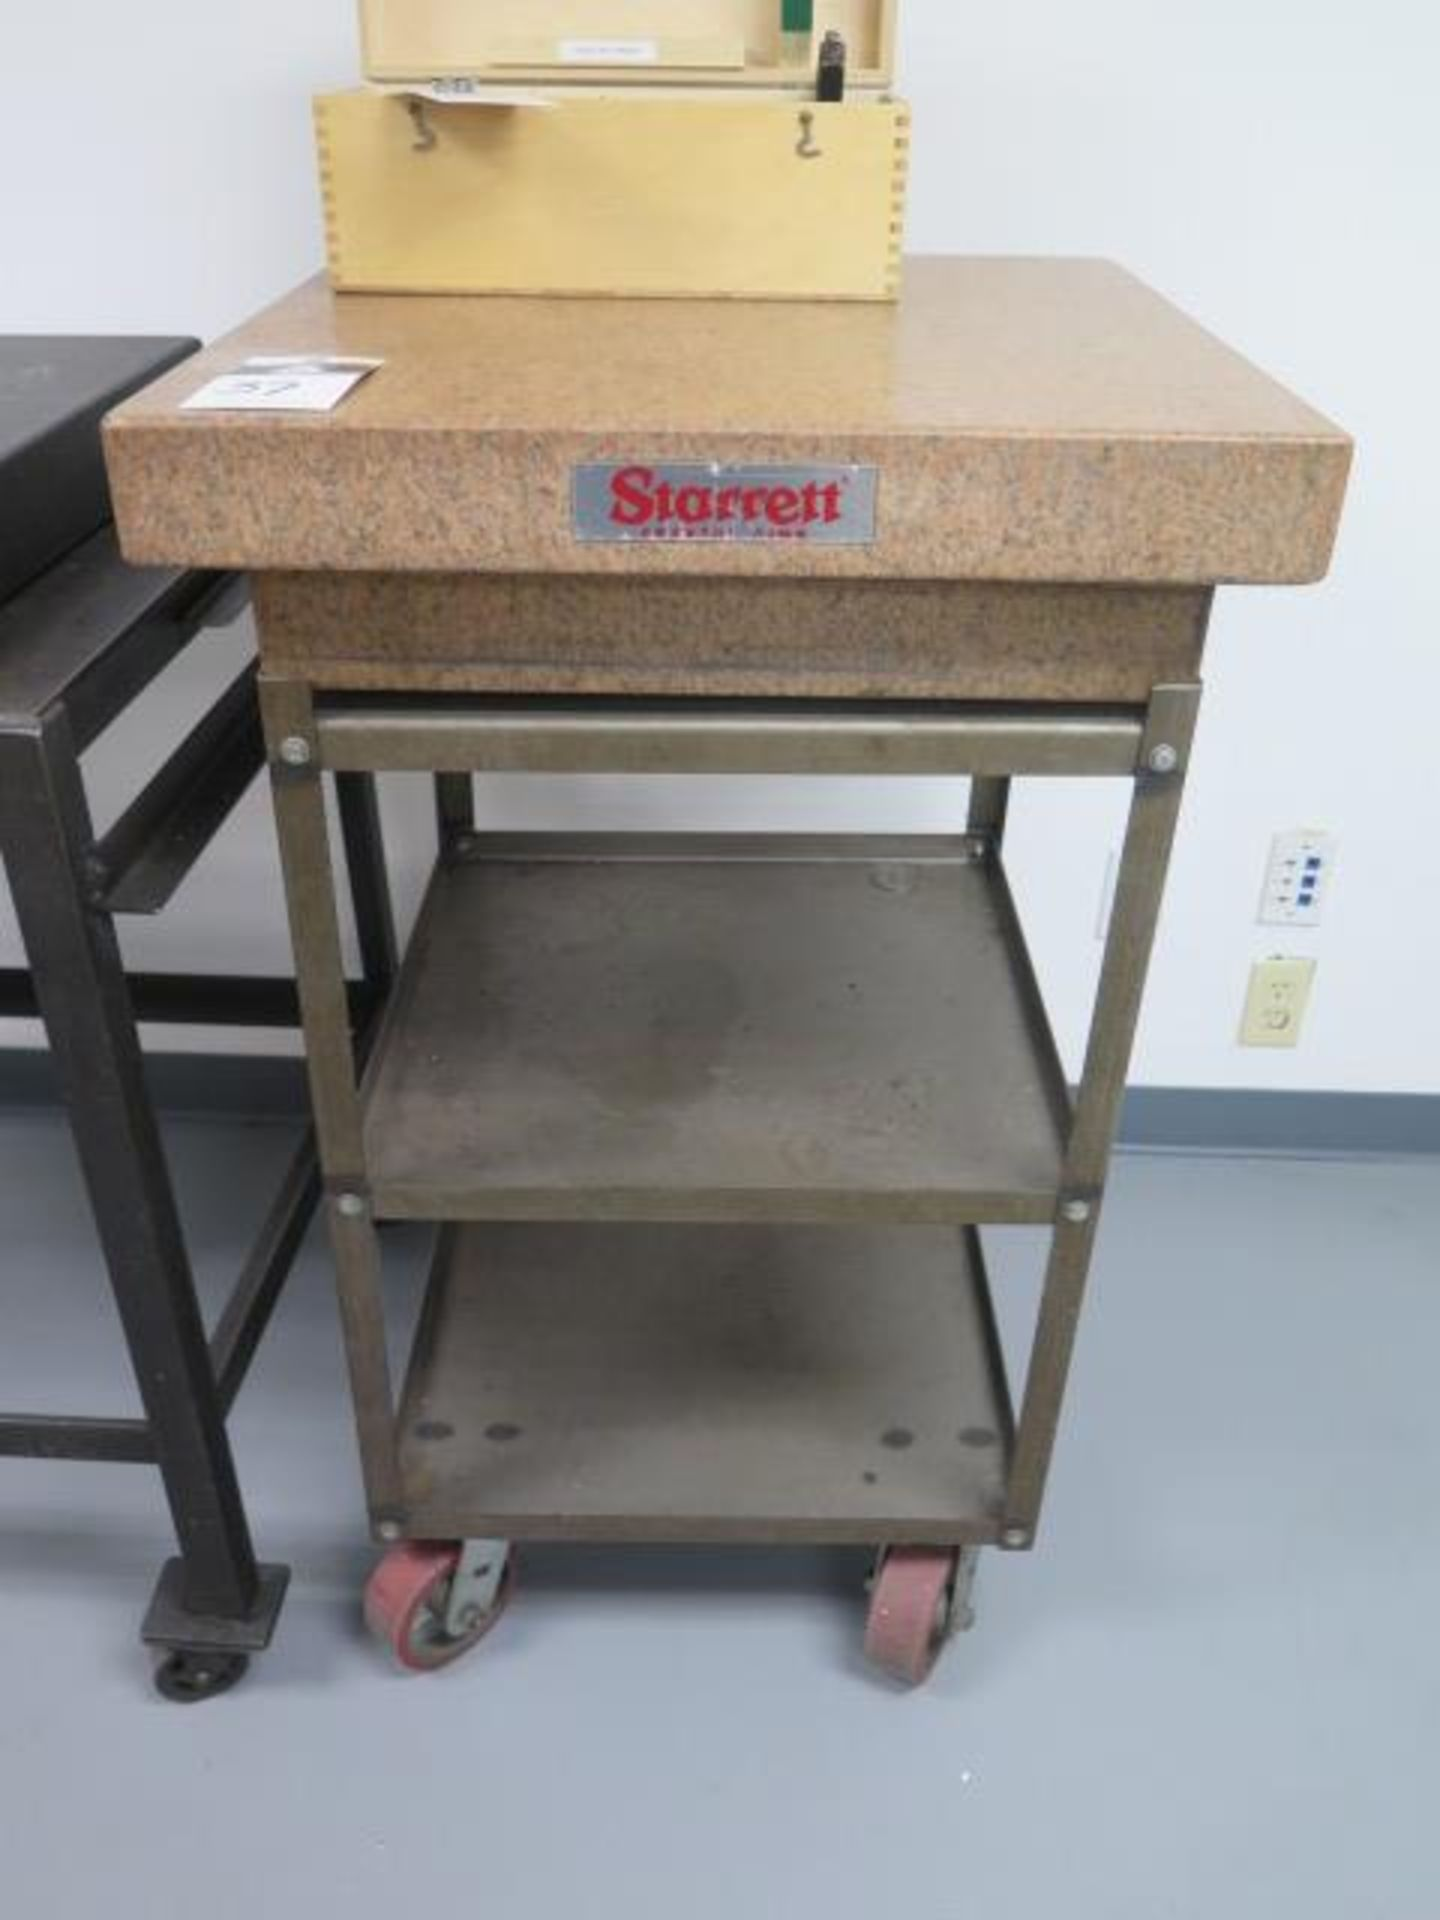 "Starrett Crystal Pink 24"" x 24"" x 6"" 4-Ledge Granite Surface Plate w/ Roll Stand (SOLD AS-IS - NO"